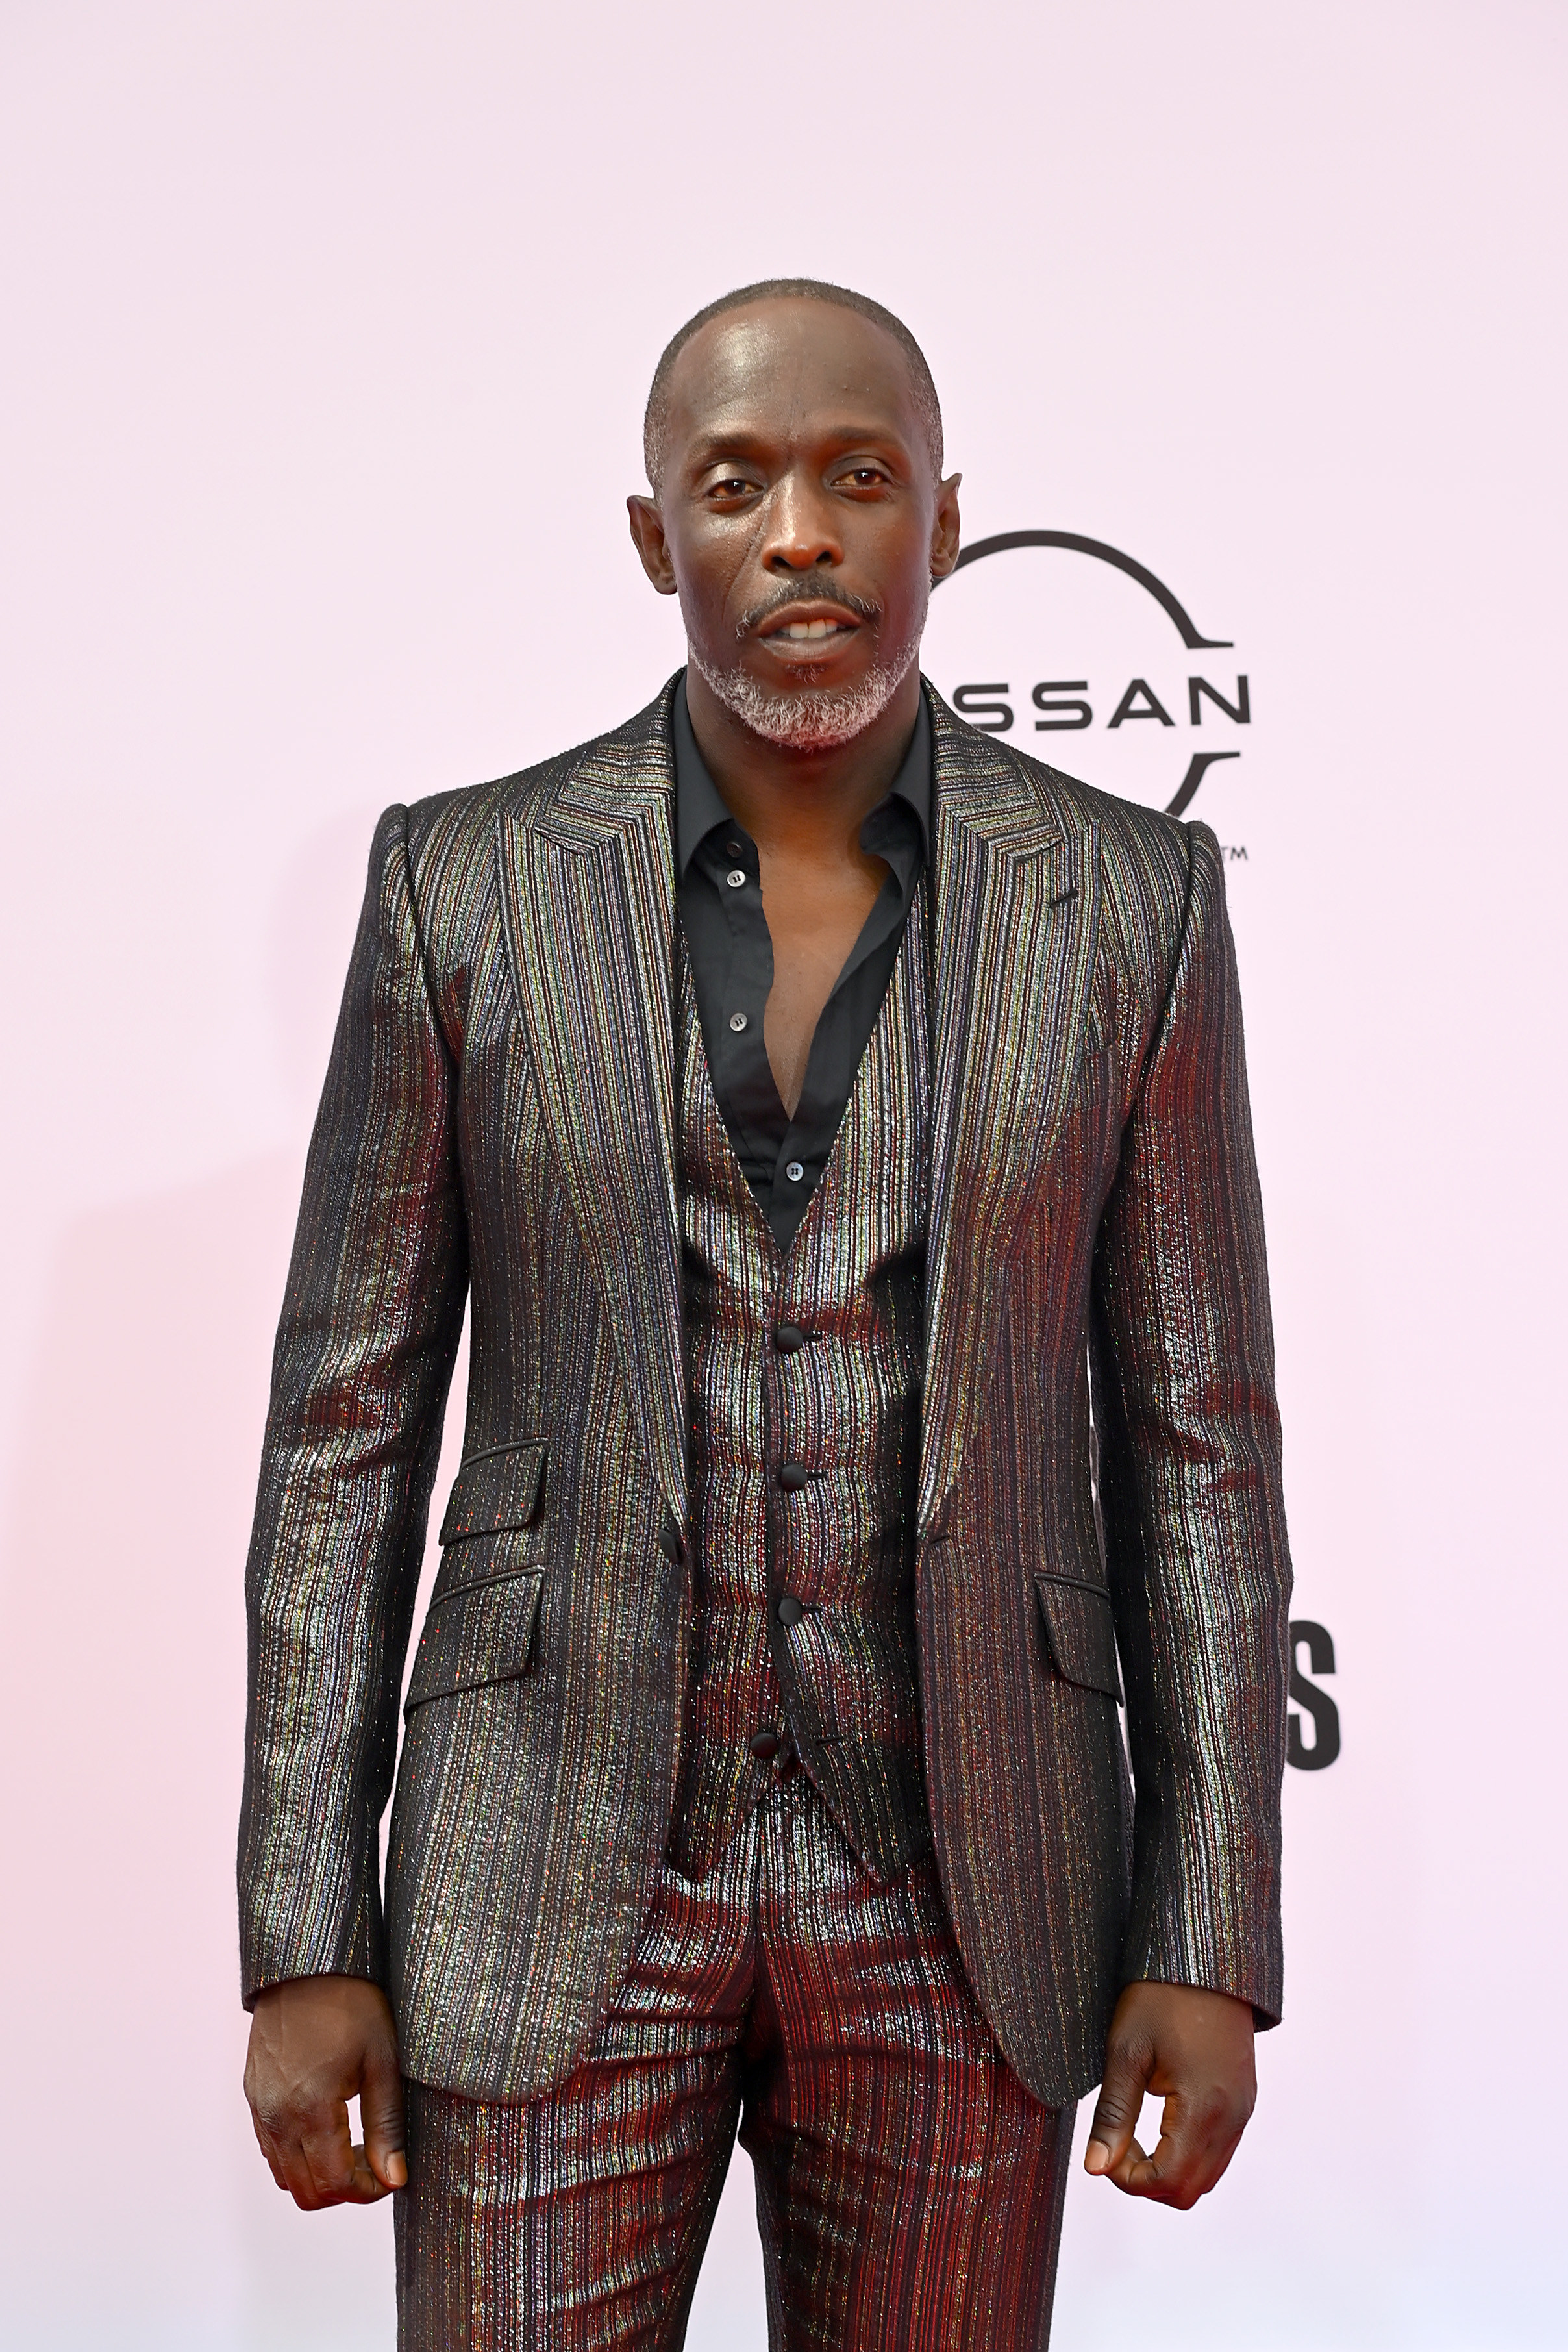 Michael in a textured metallic suit at a red carpet event